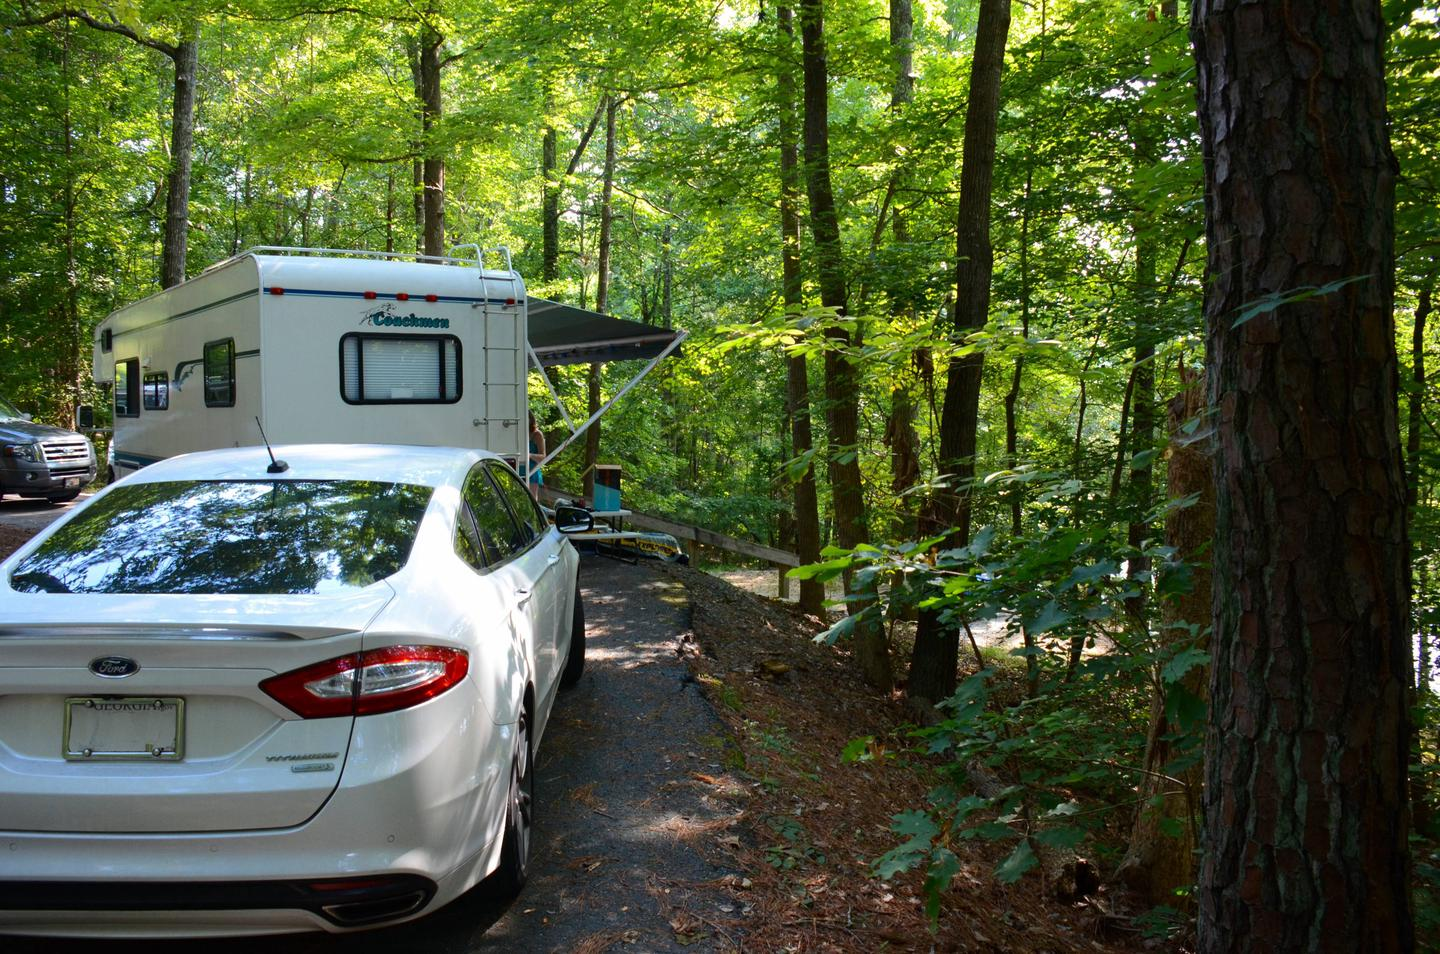 Pull-thru entrance, driveway slope, awning-side clearance.Payne Campground, campsite 40.